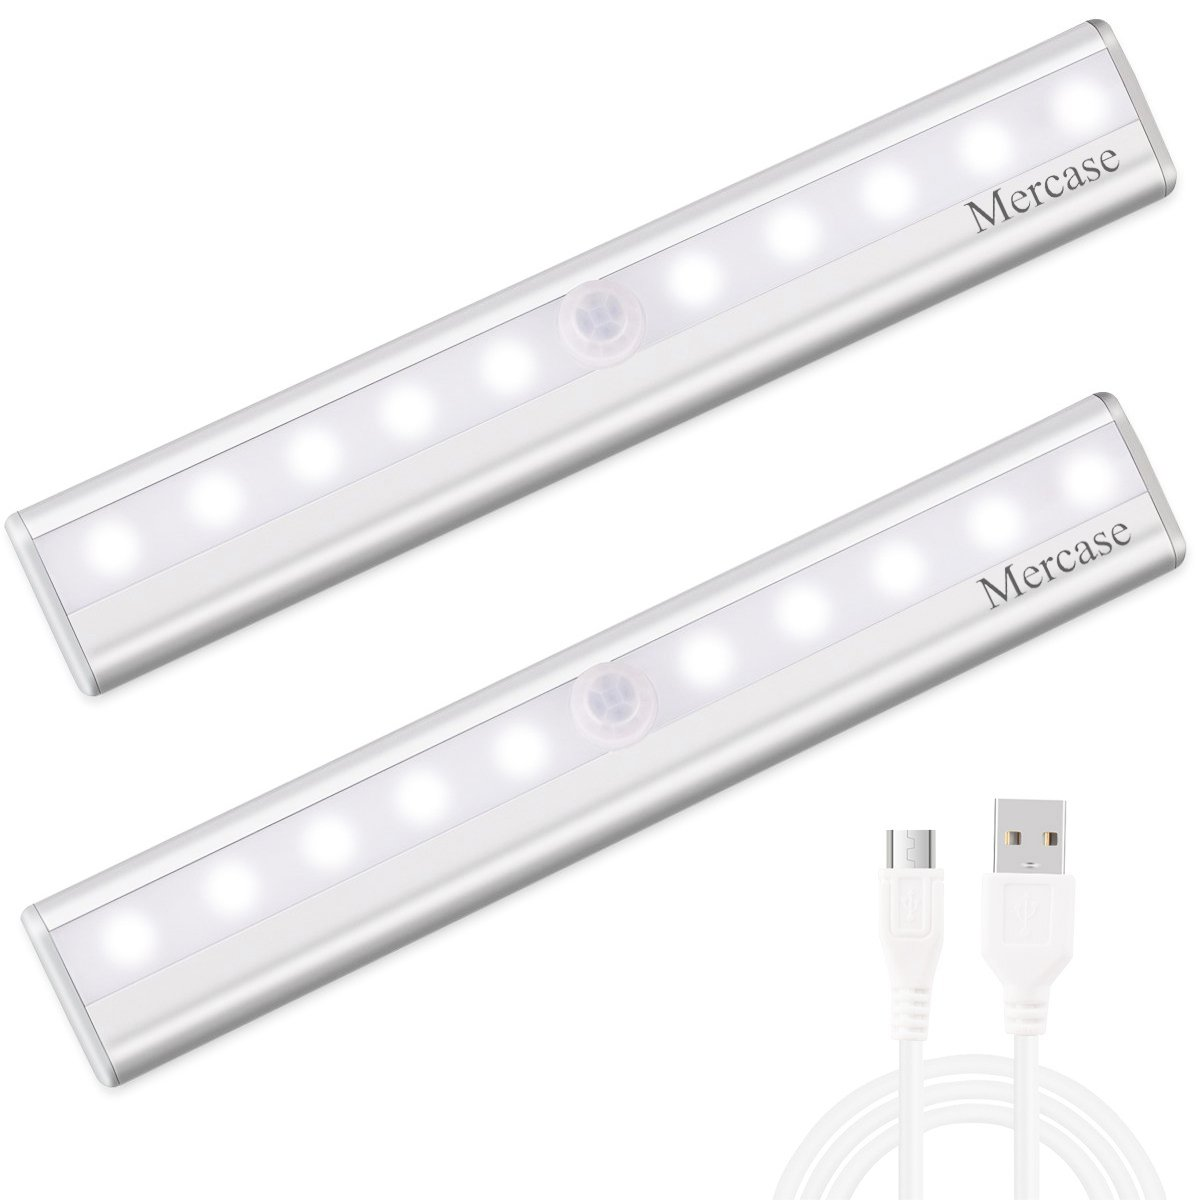 Mercase Motion Sensor Cabinet Lights, 10 LED Light Bar USB Rechargeable Removable Magnetic Strip for Bedoom, Kitchen and Bathroom